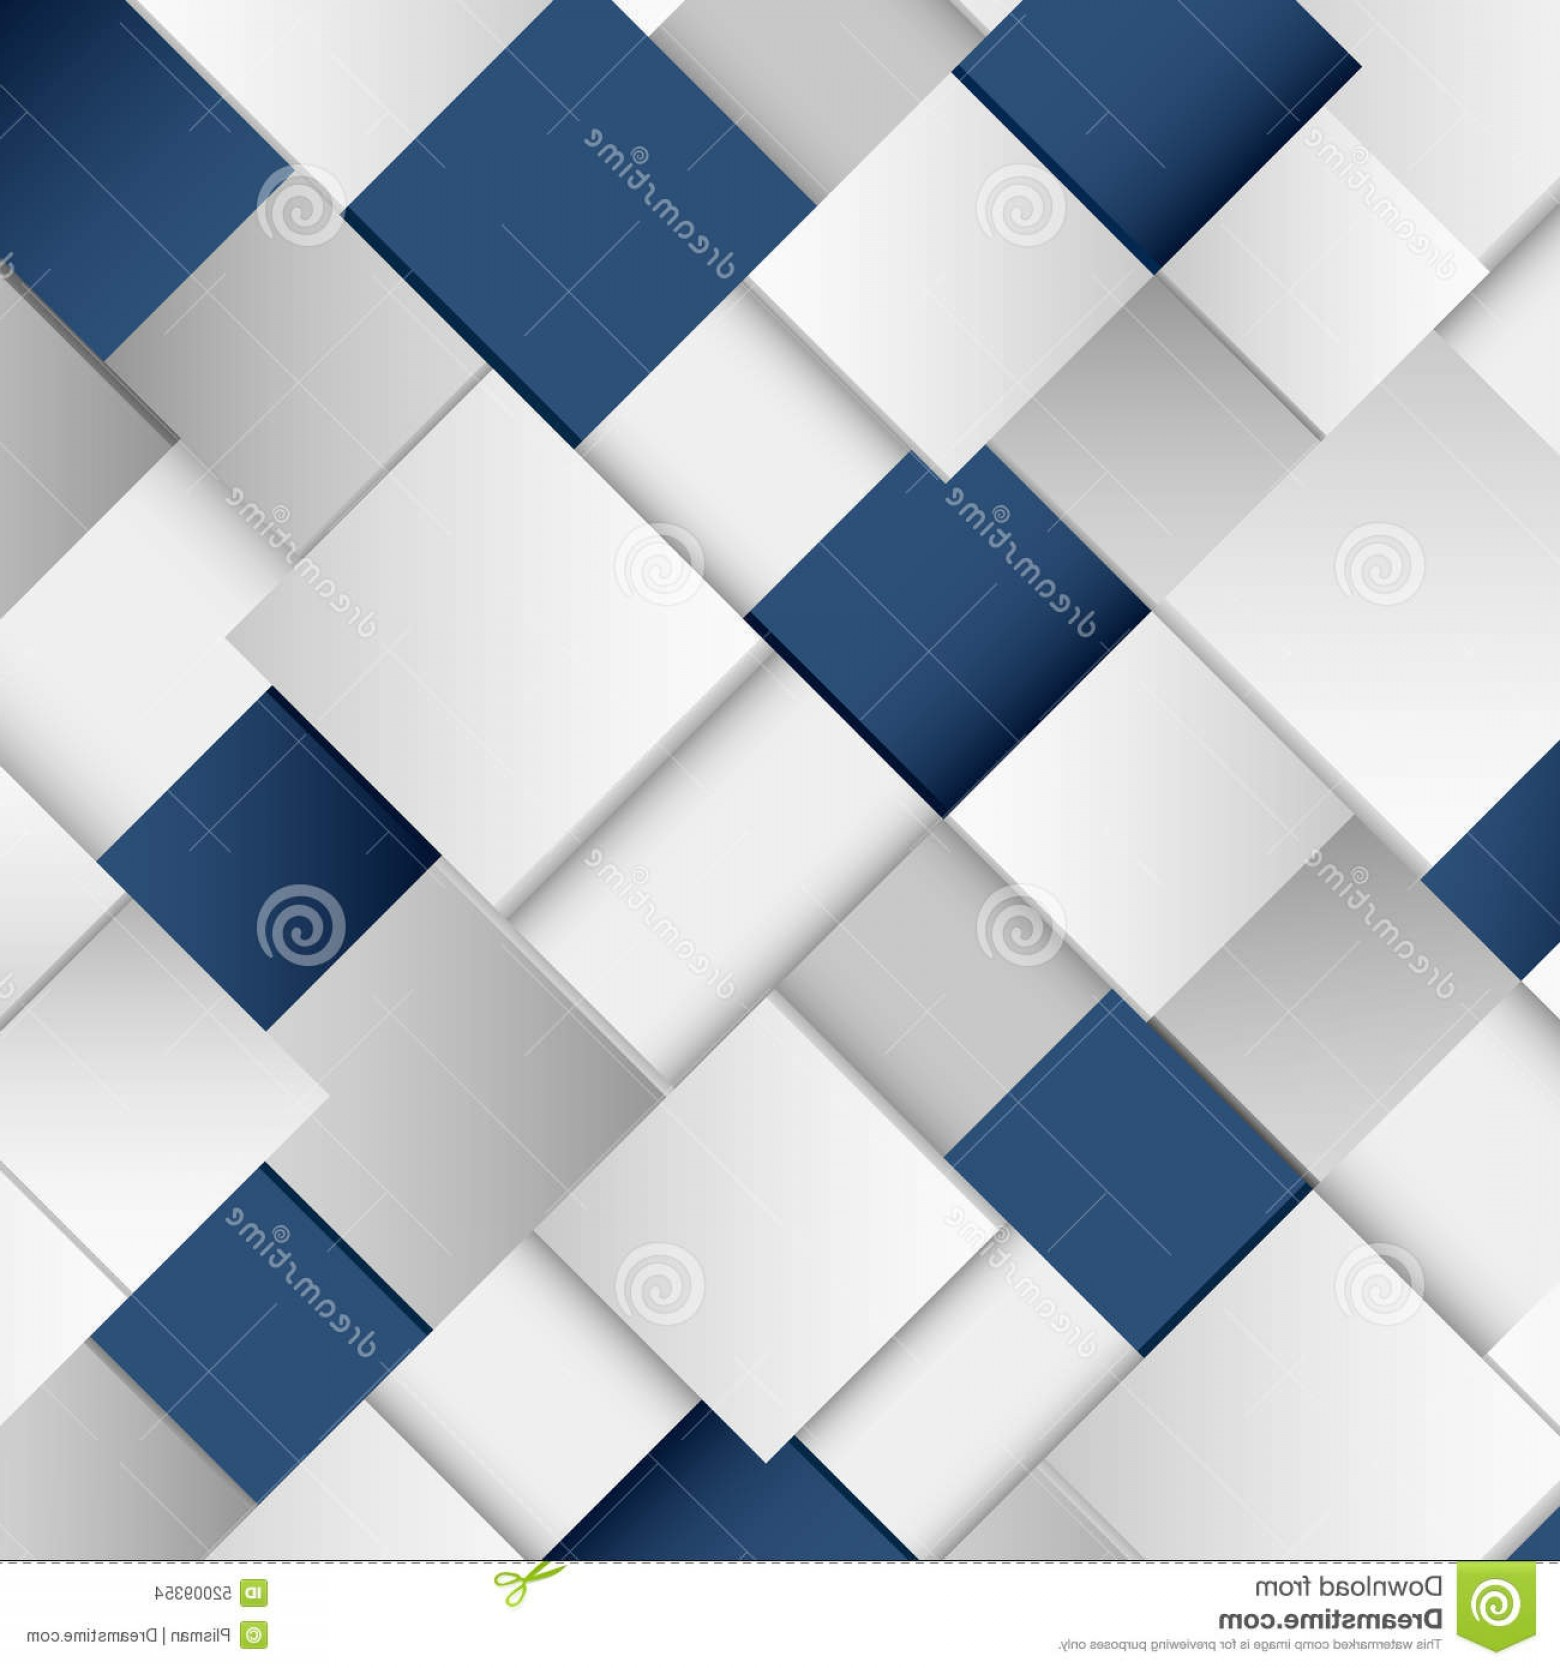 Blue With White Background Vector: Stock Illustration Abstract White Blue Square Background Vector Eps Image